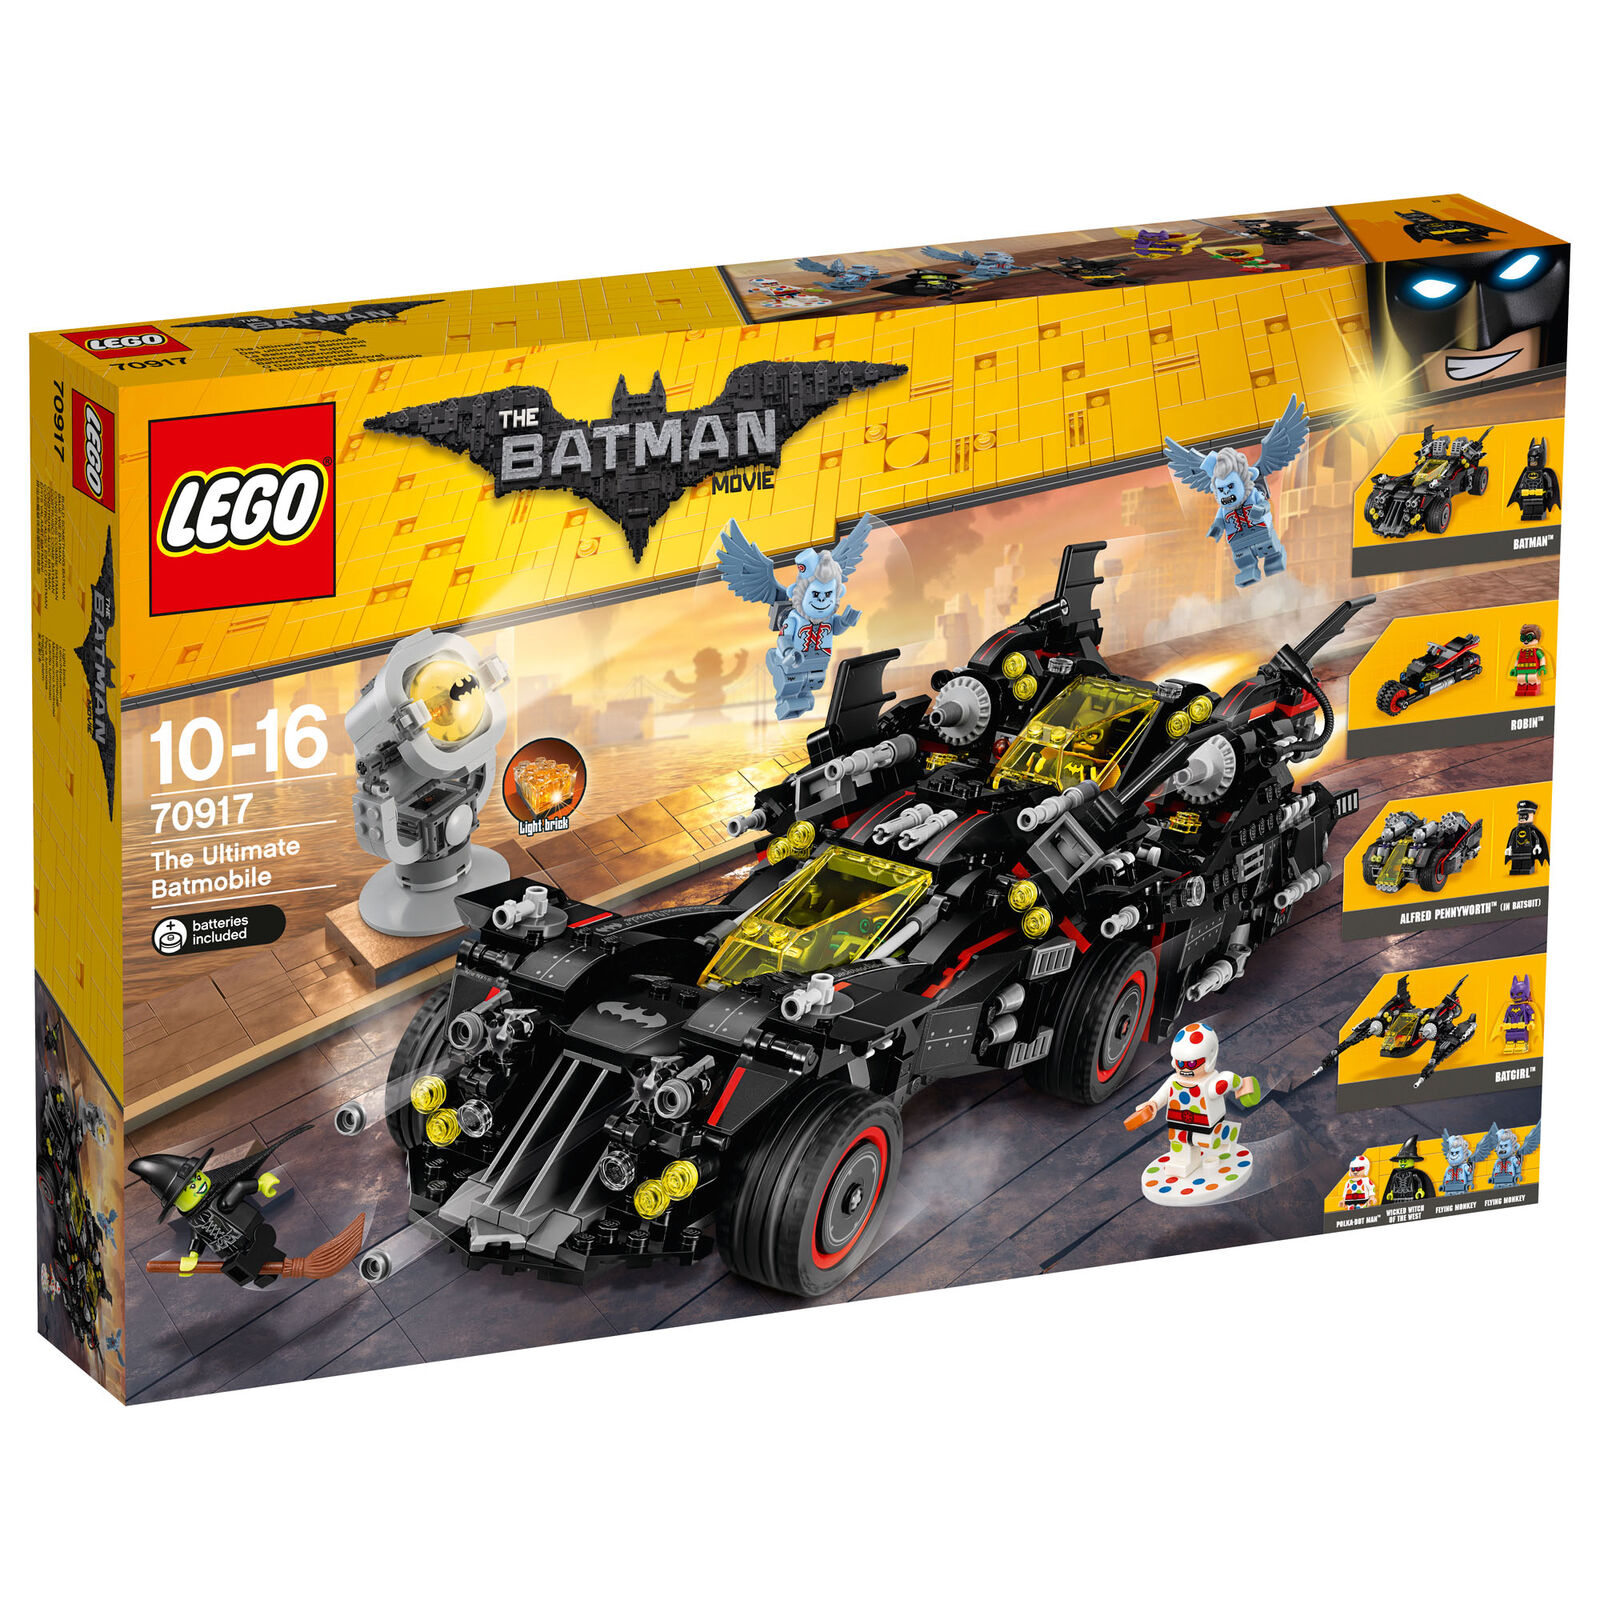 70917 LEGO Batman Movie The Ultimate Batmobile 1456 Pieces Age 10-16 New 2017